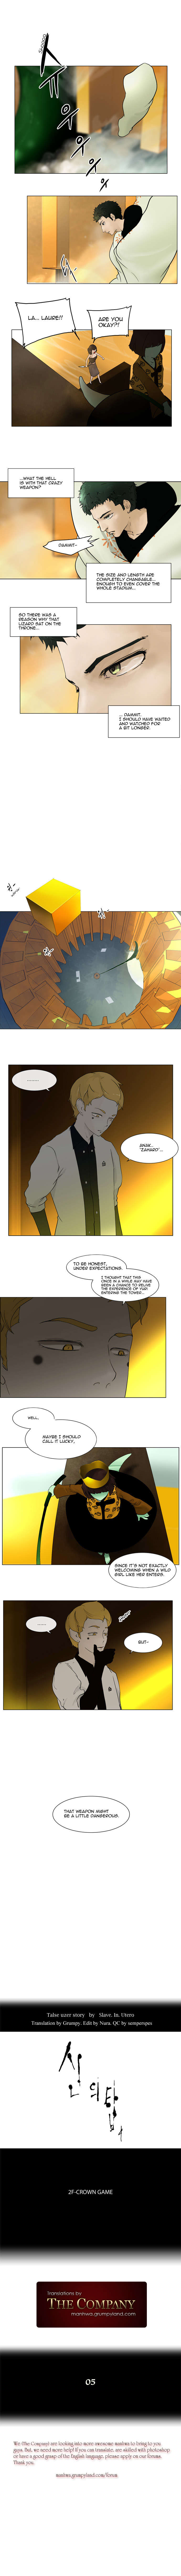 Tower of God 18 Page 1